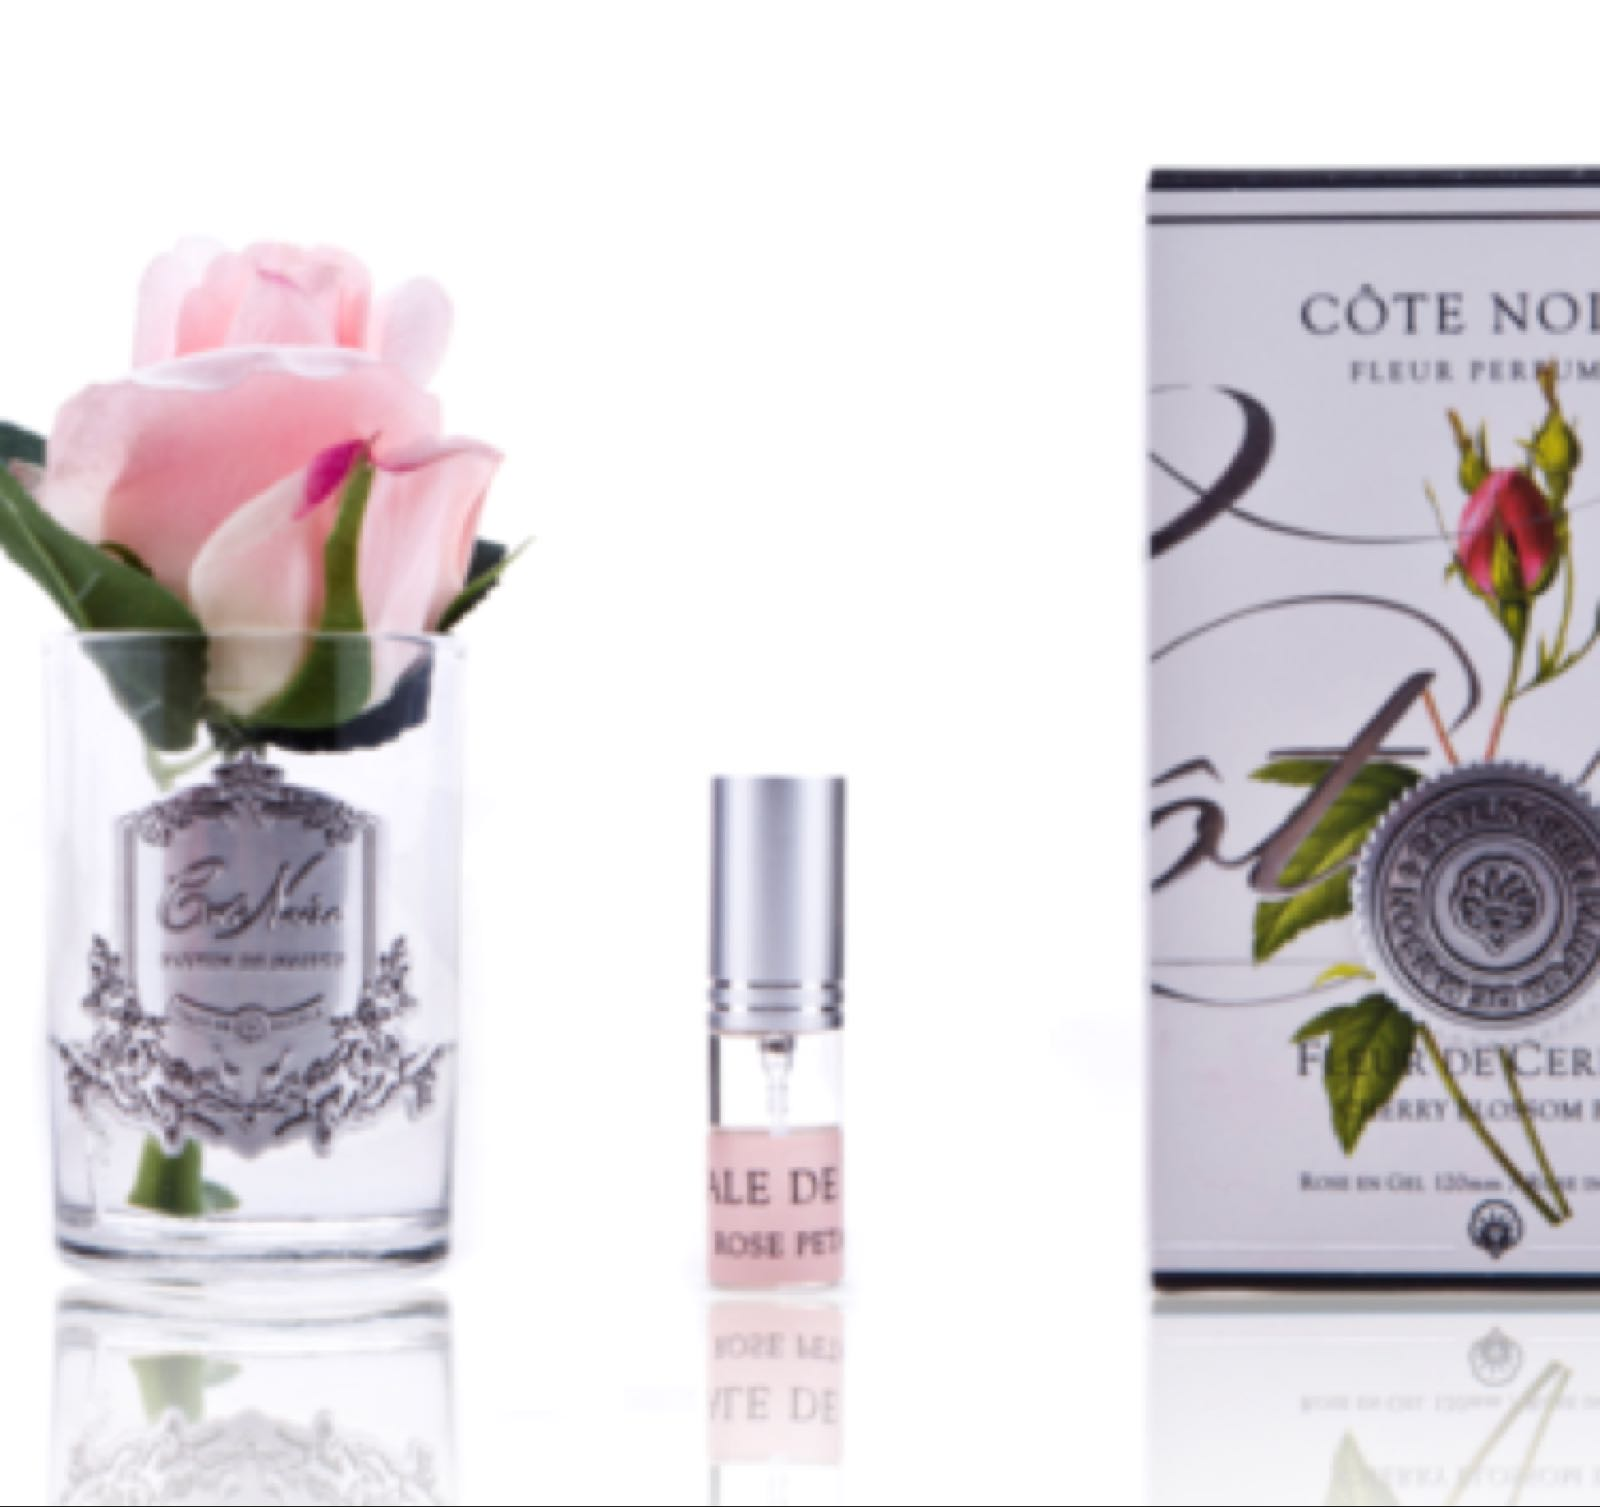 Cote noire french pink small rose bud with fragrance